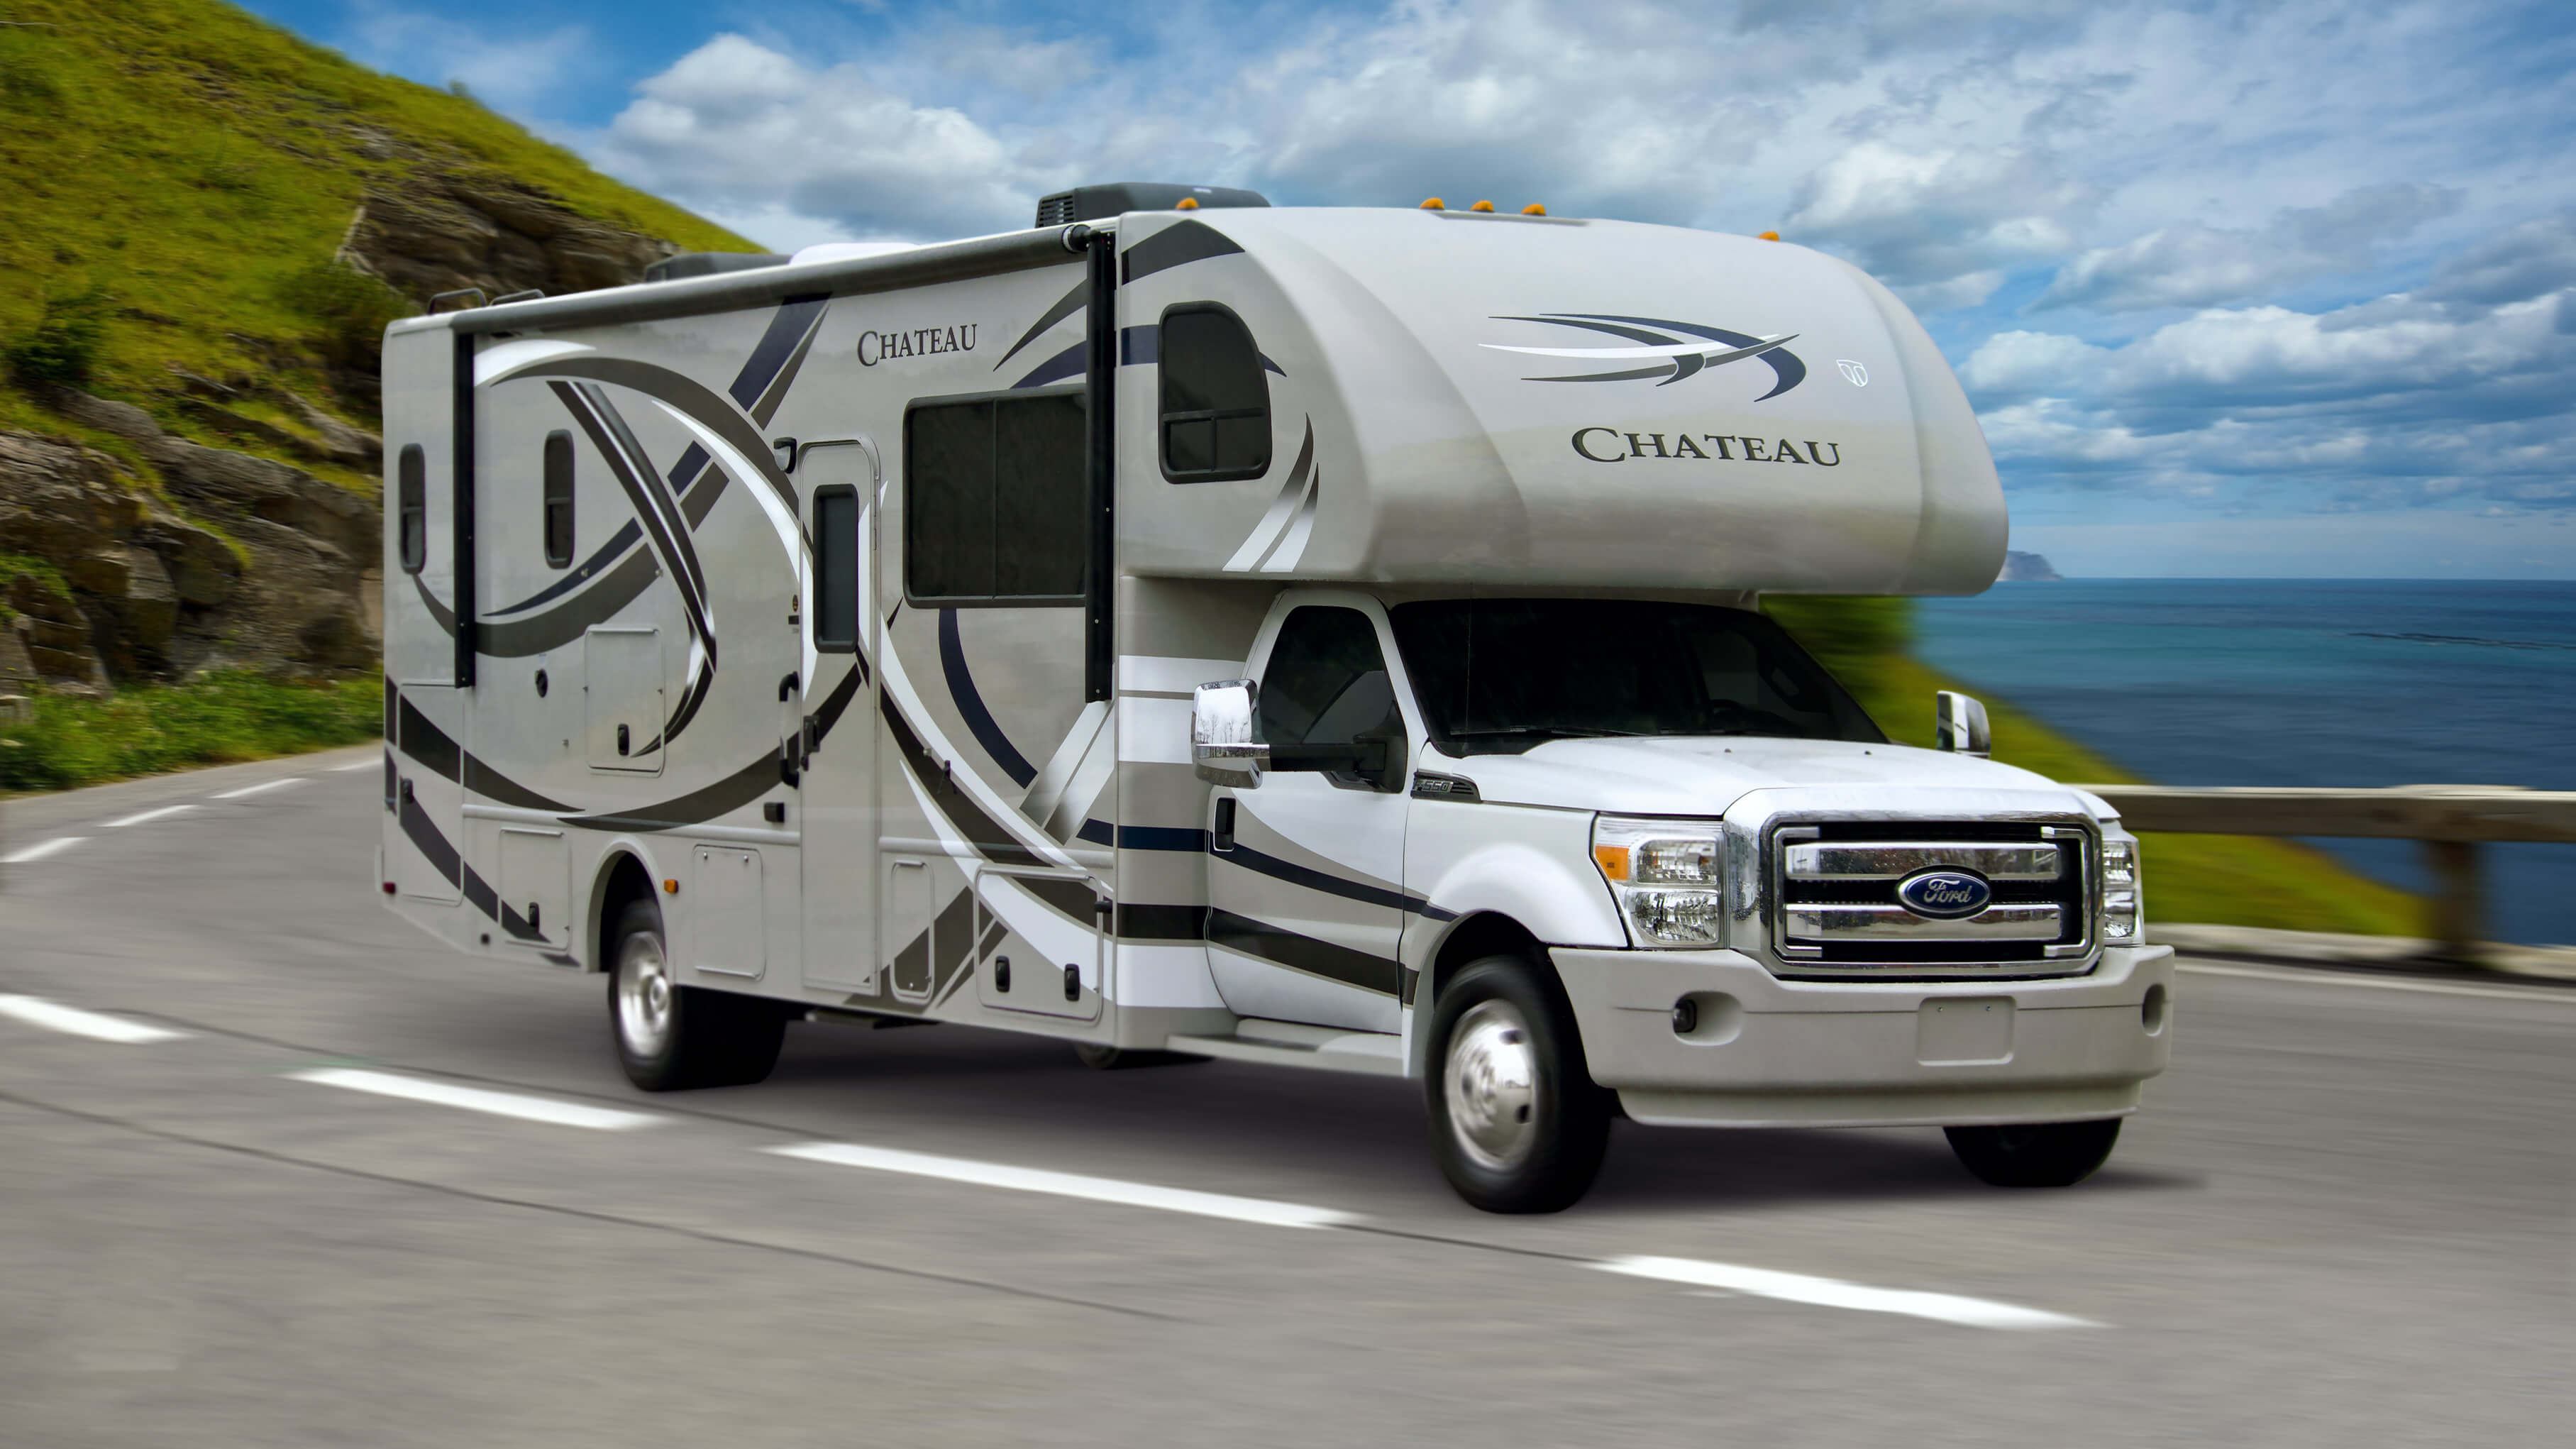 Small class c rv models quotes - Class A Rv Motorhomes Get Your Free Rental Quote Now